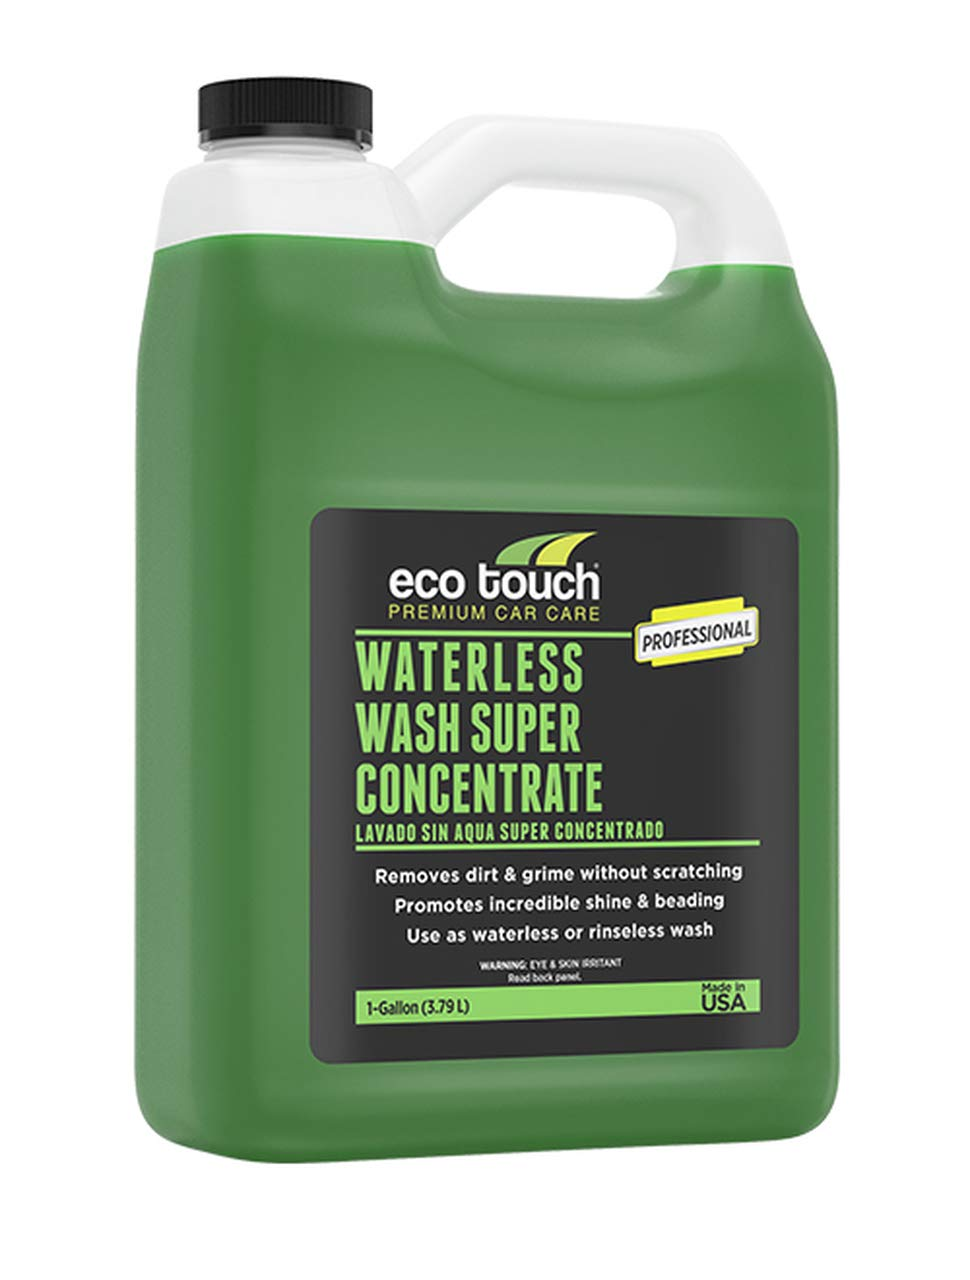 Eco Touch Waterless Wash Super Concentrate 1 Gallon